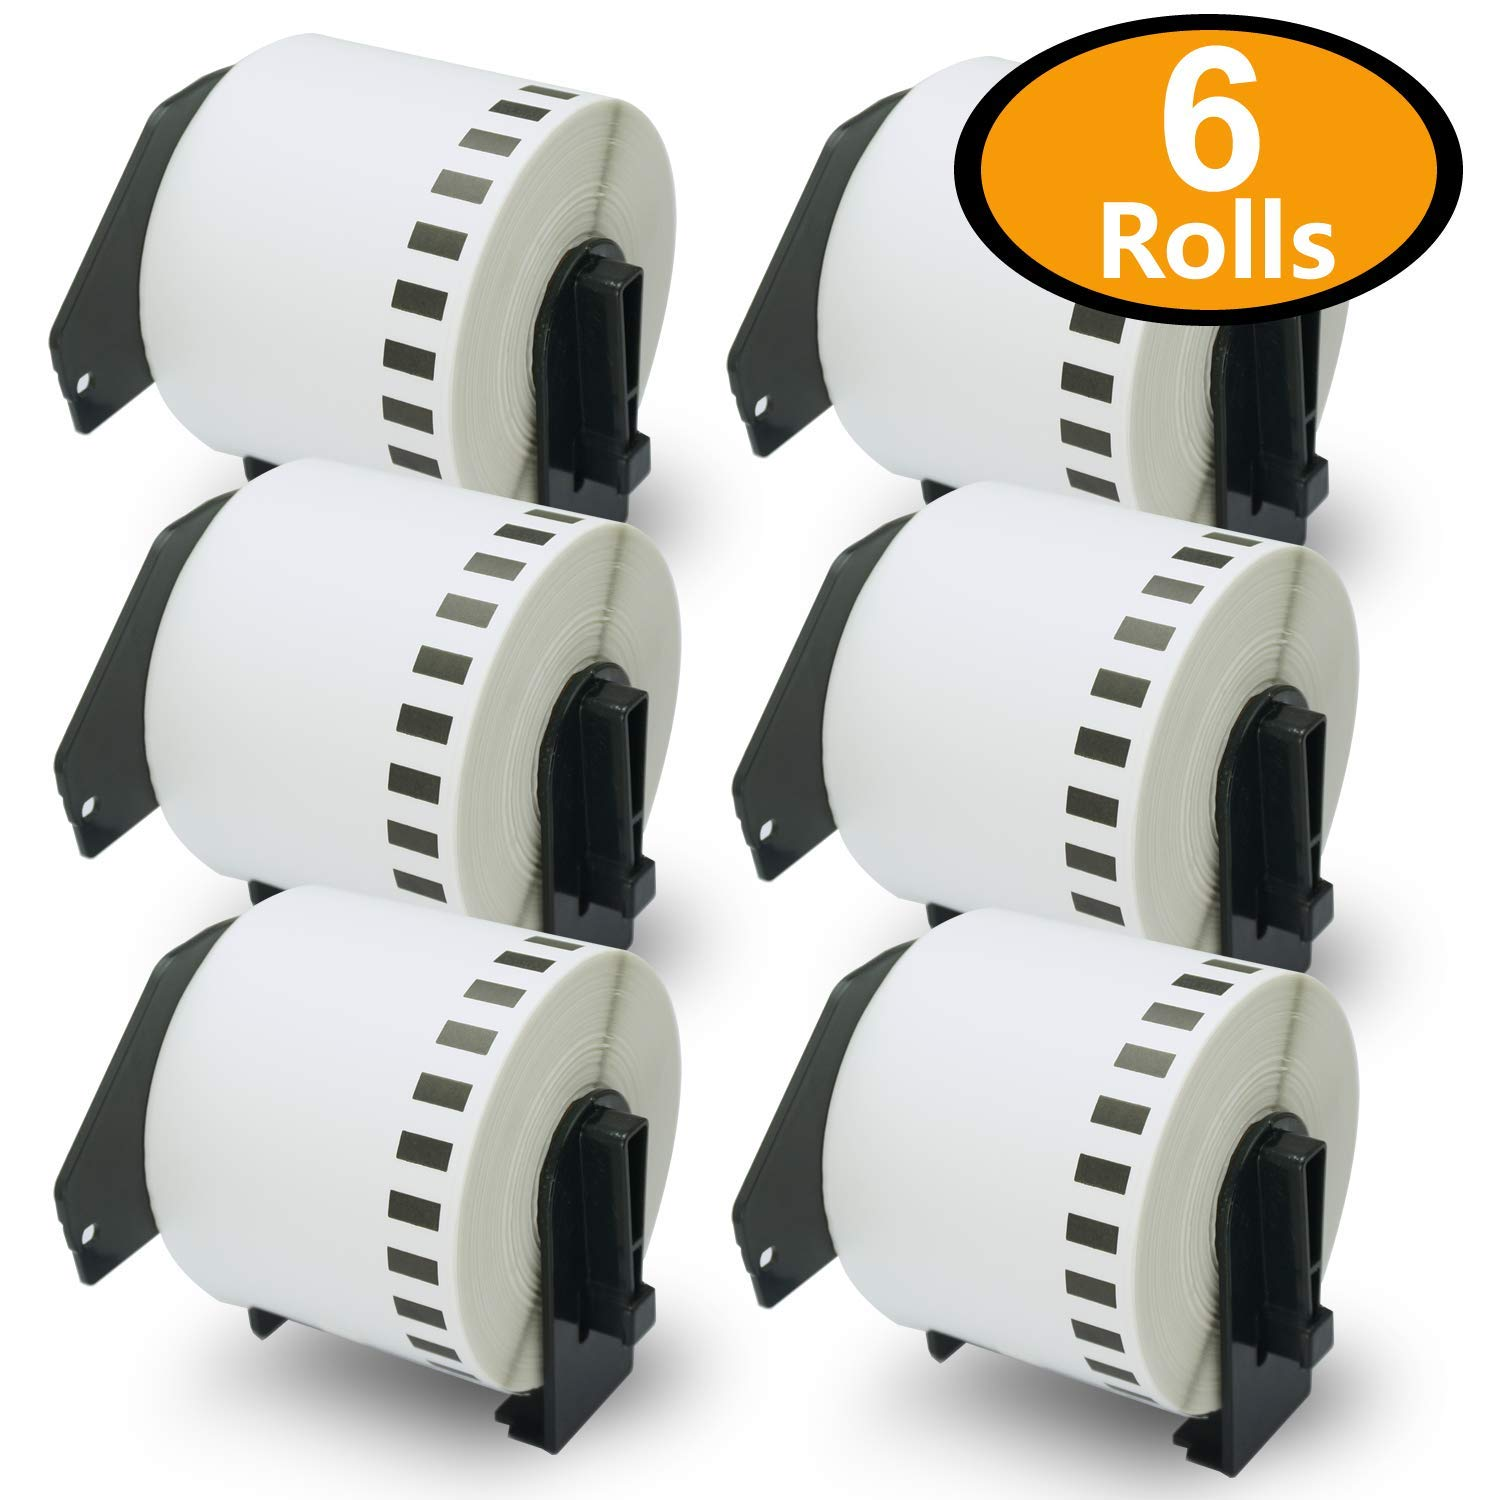 6 Rolls Brother-Compatible DK-2205 62mm x 30.48M(2-3/7'' x 100') Continuous Length Paper Tape Labels With Refillable Cartridge